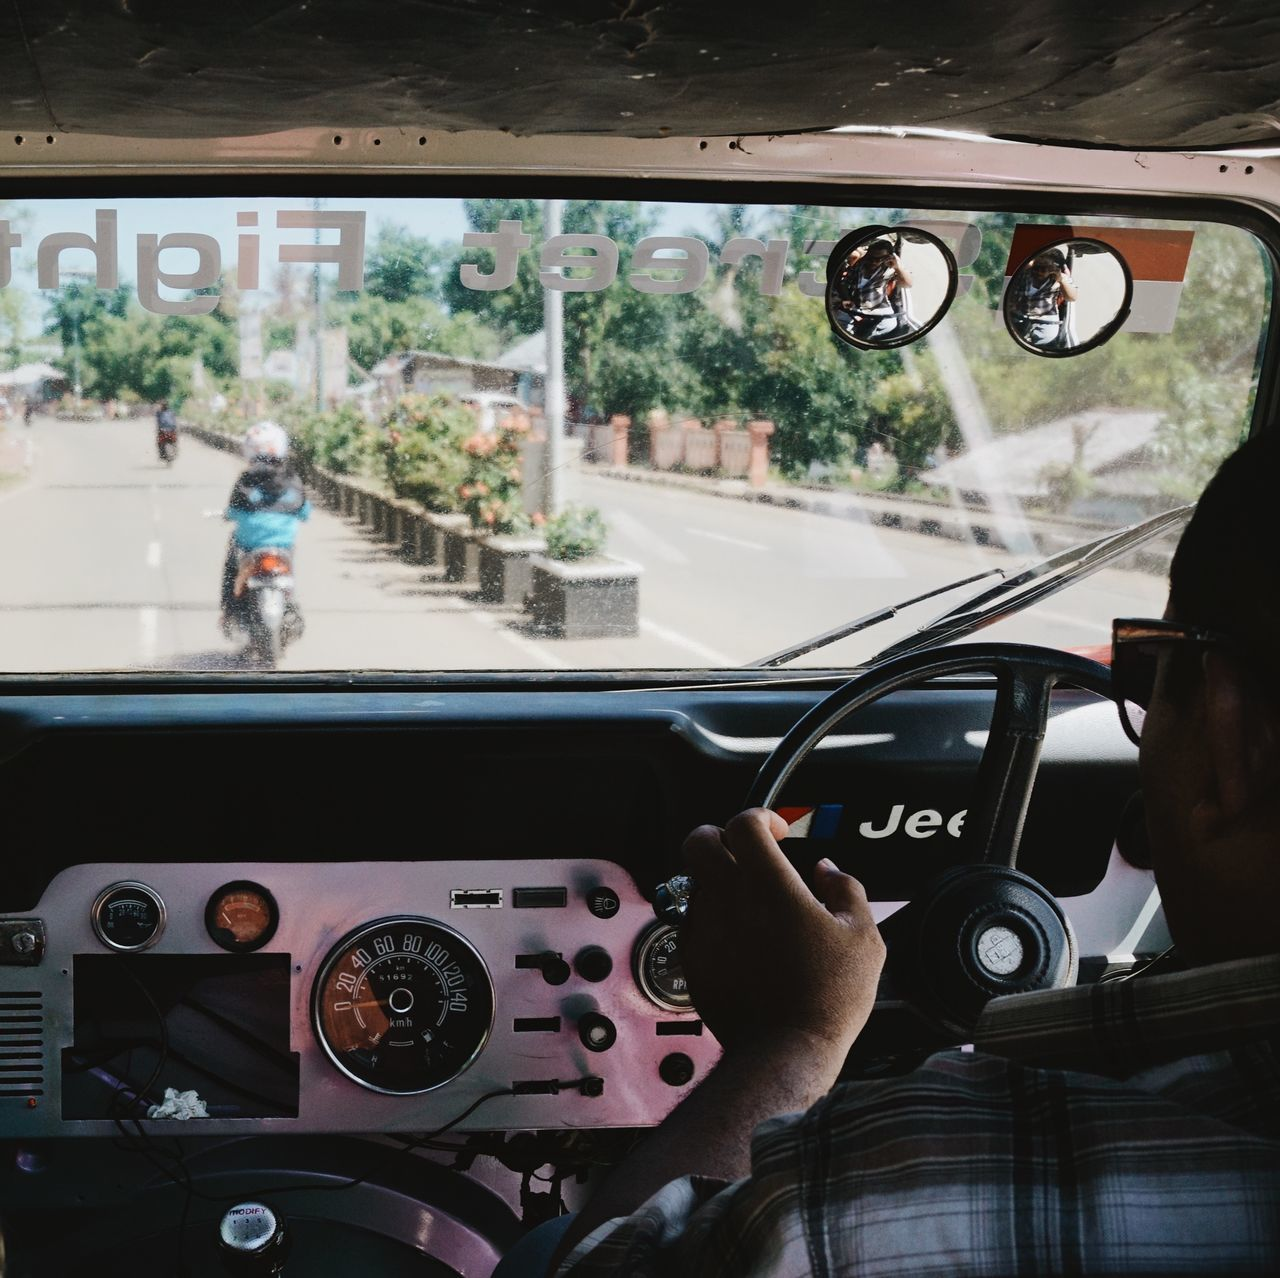 car, transportation, vehicle interior, land vehicle, mode of transport, car interior, real people, dashboard, steering wheel, windshield, human hand, men, day, windscreen, one person, human body part, speedometer, close-up, outdoors, people